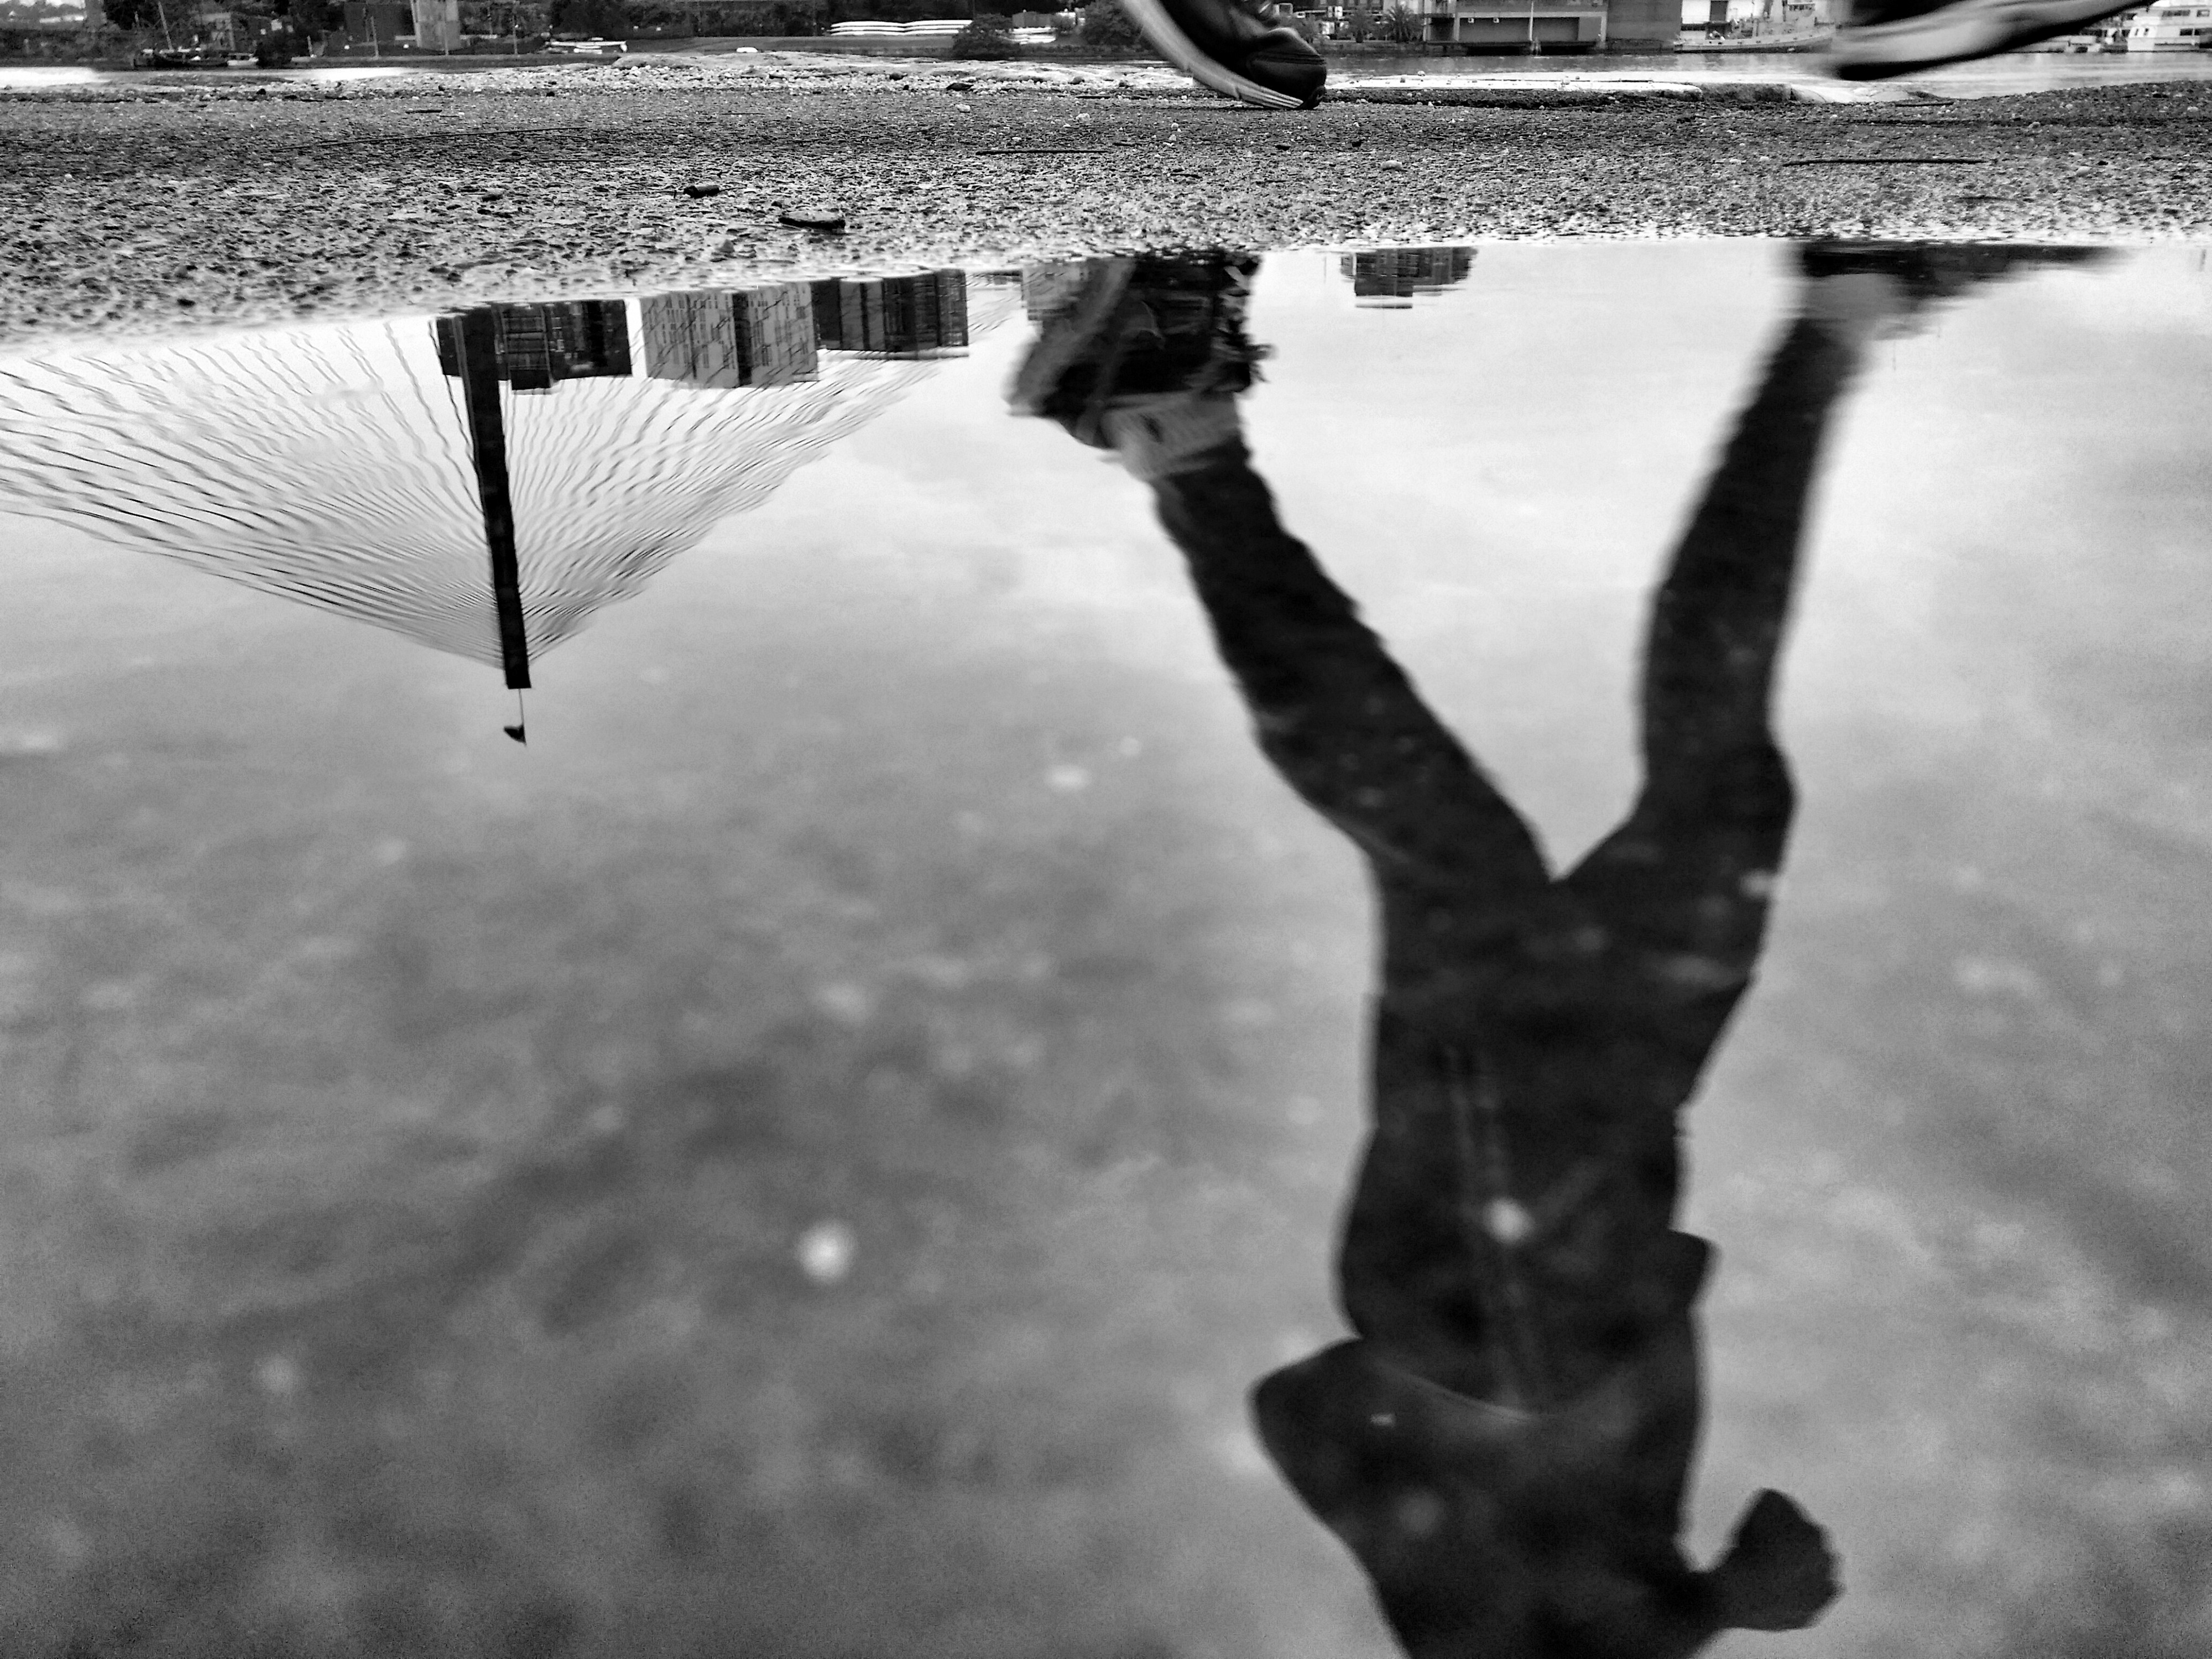 A runner outside reflected in a puddle.